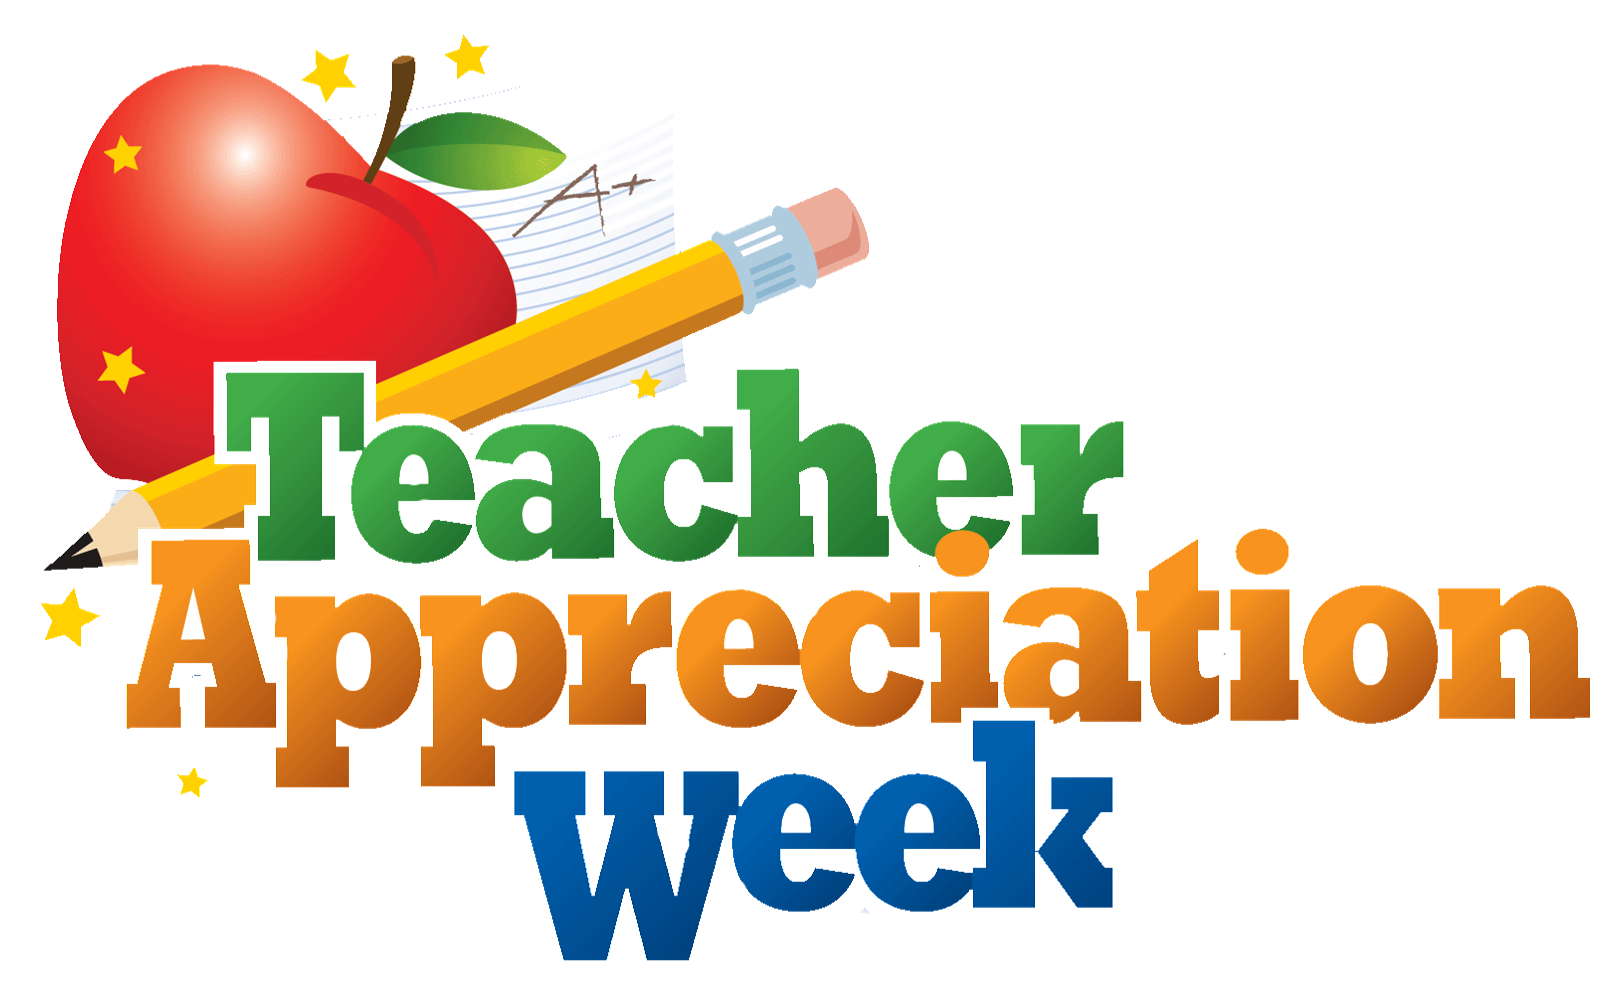 Money clipart teacher. Appreciation week emerald christian